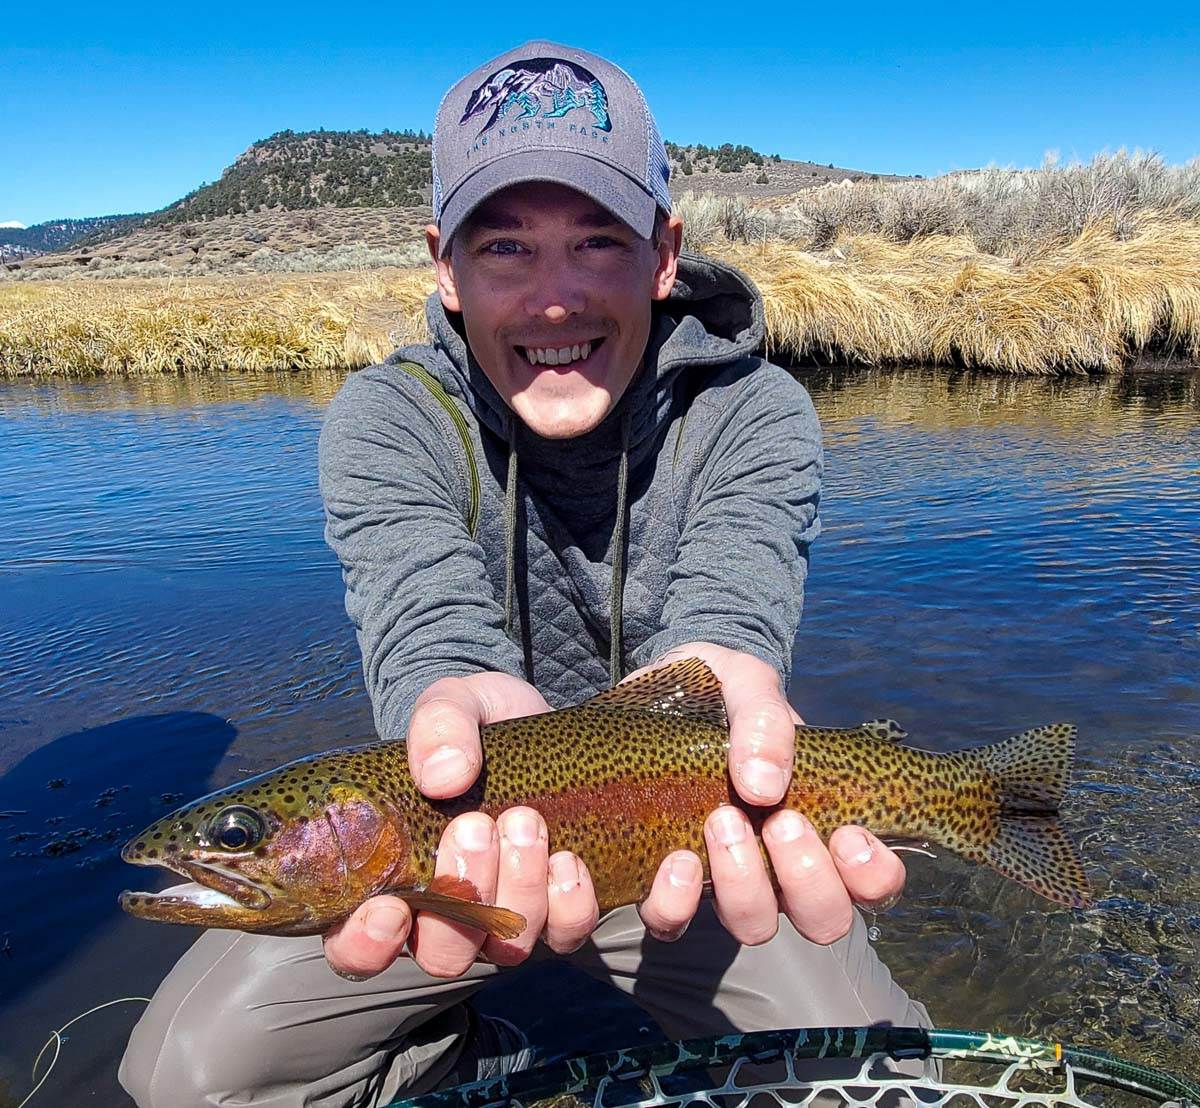 A fly fisherman with a grey hat holding a rainbow trout in spawning colors in a clear stream.